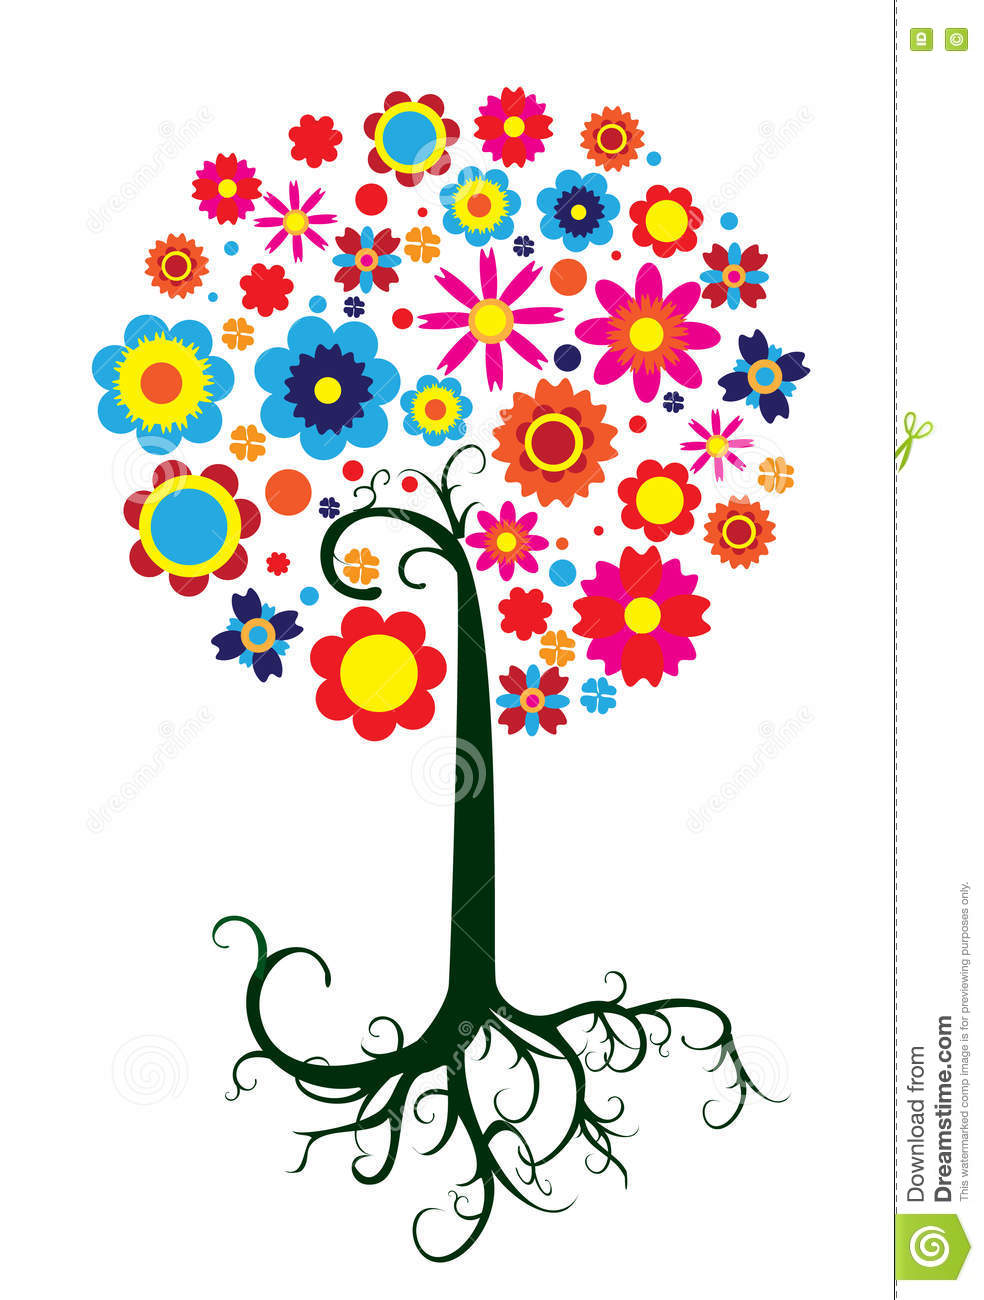 Vector image of colourful fantastic tree with diffrent flowers